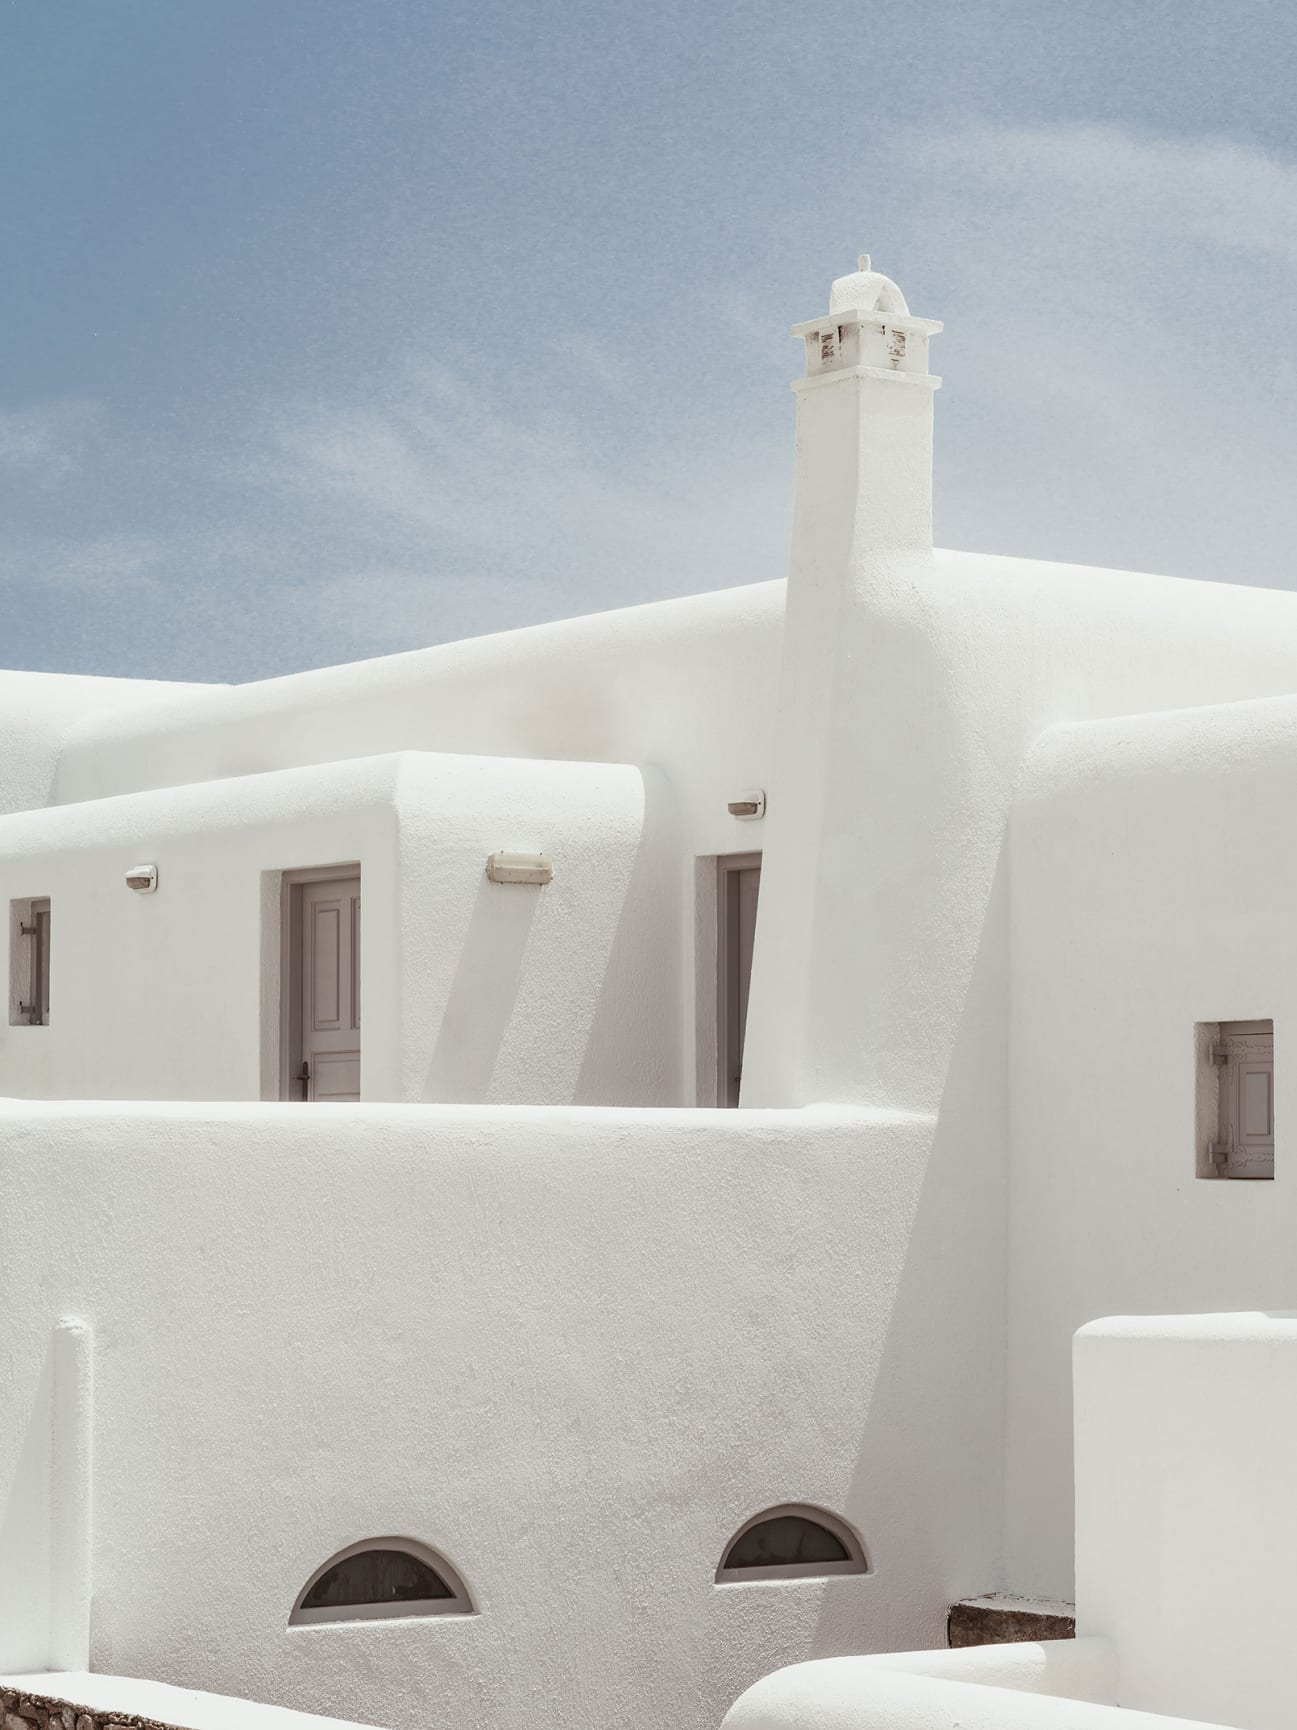 White stucco buildings under a blue sky.